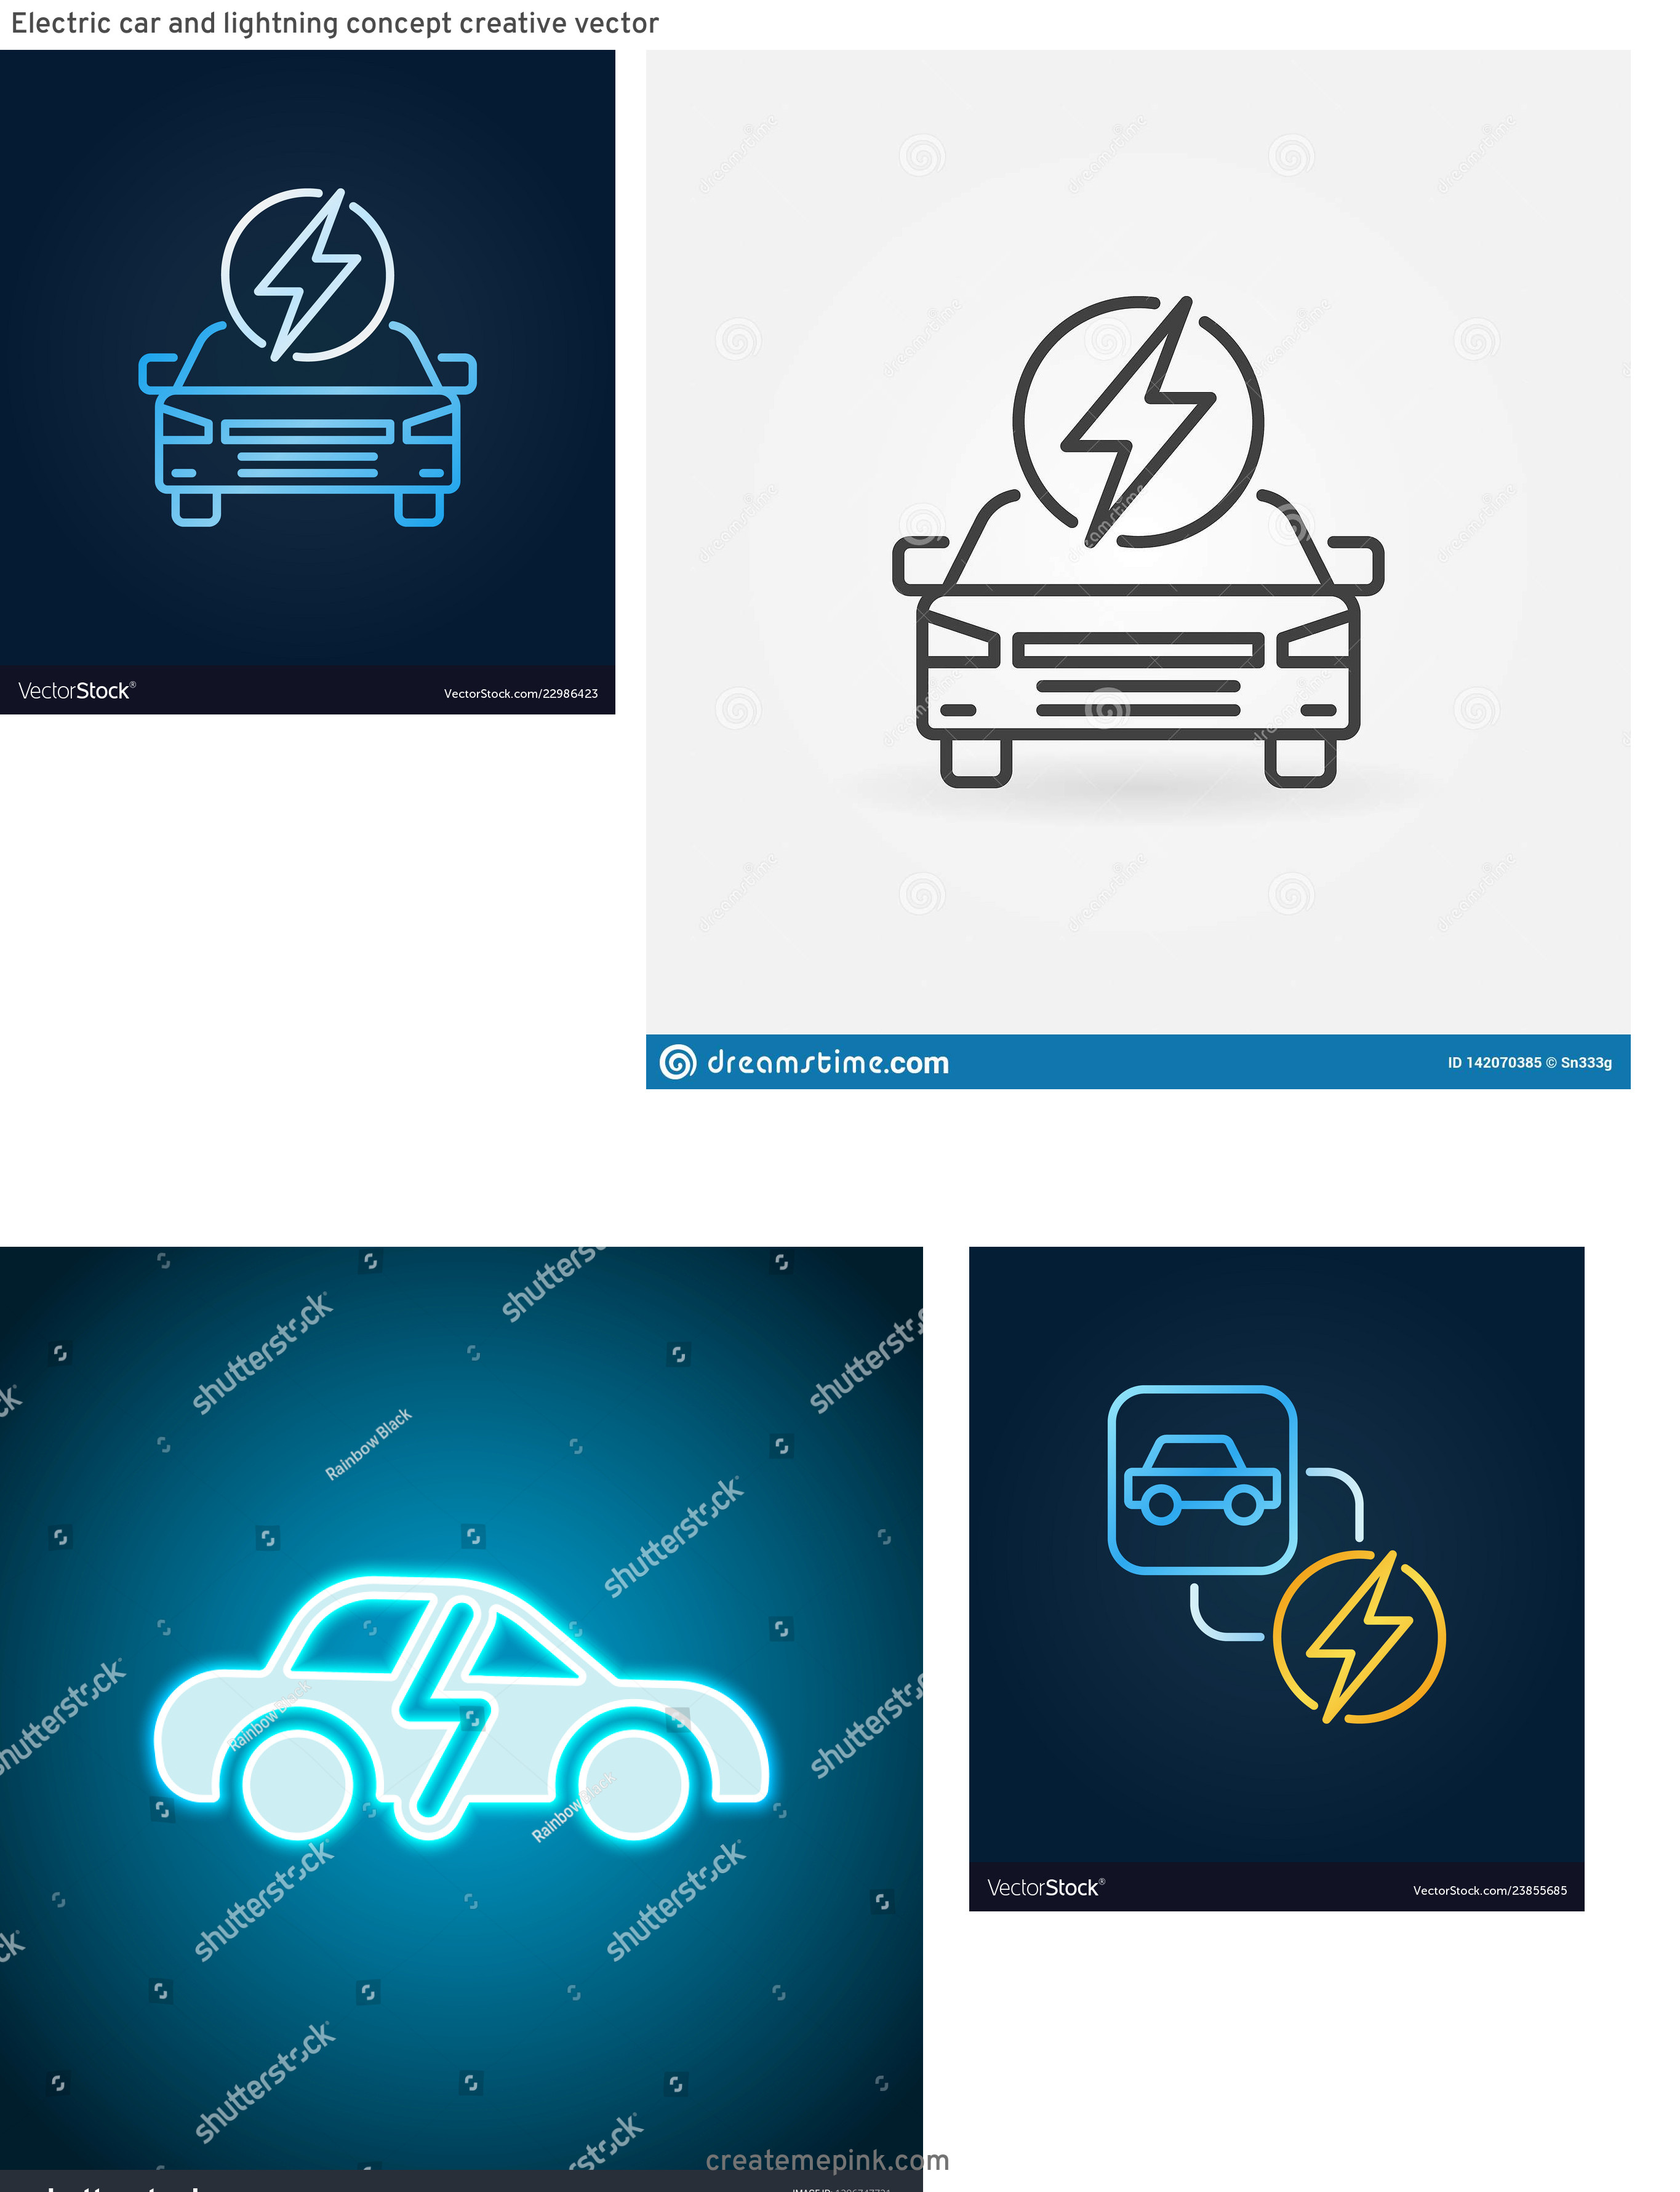 Lightning Car Graphics Vector: Electric Car And Lightning Concept Creative Vector